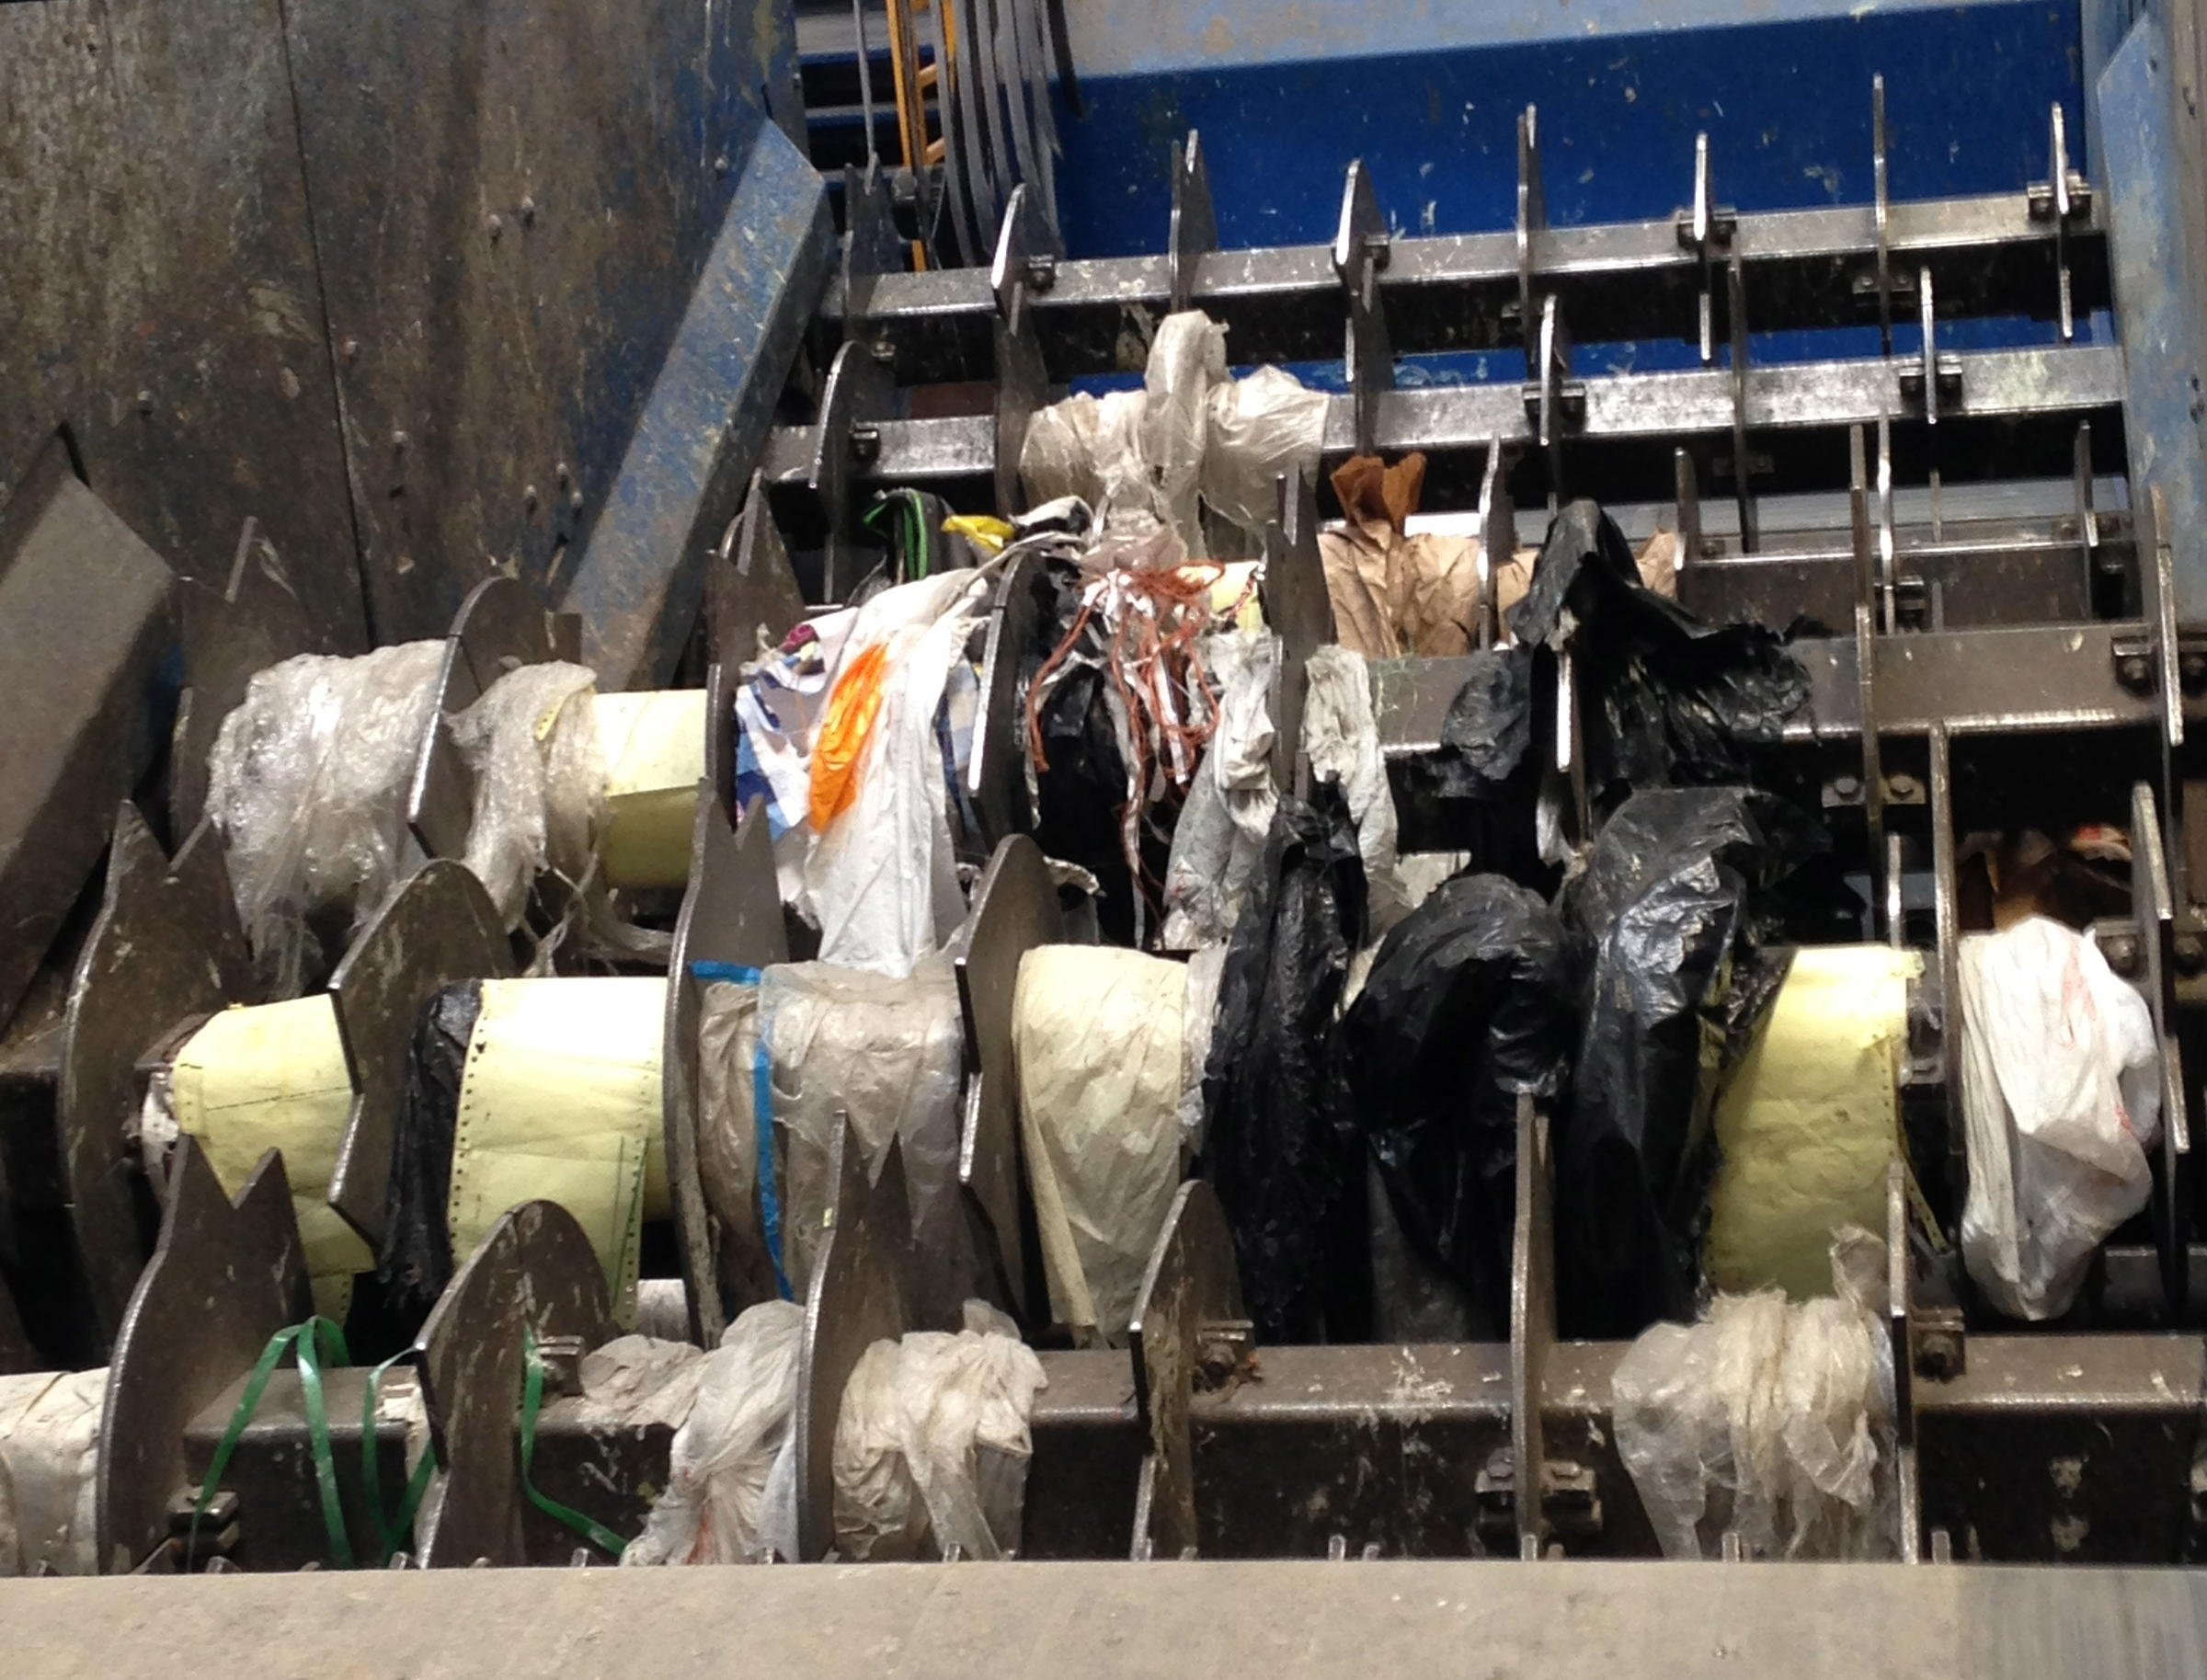 Plastics contamination at the Western Washtenaw Recycling Authority in Chelsea, MI. Image: Noelle Bowman.